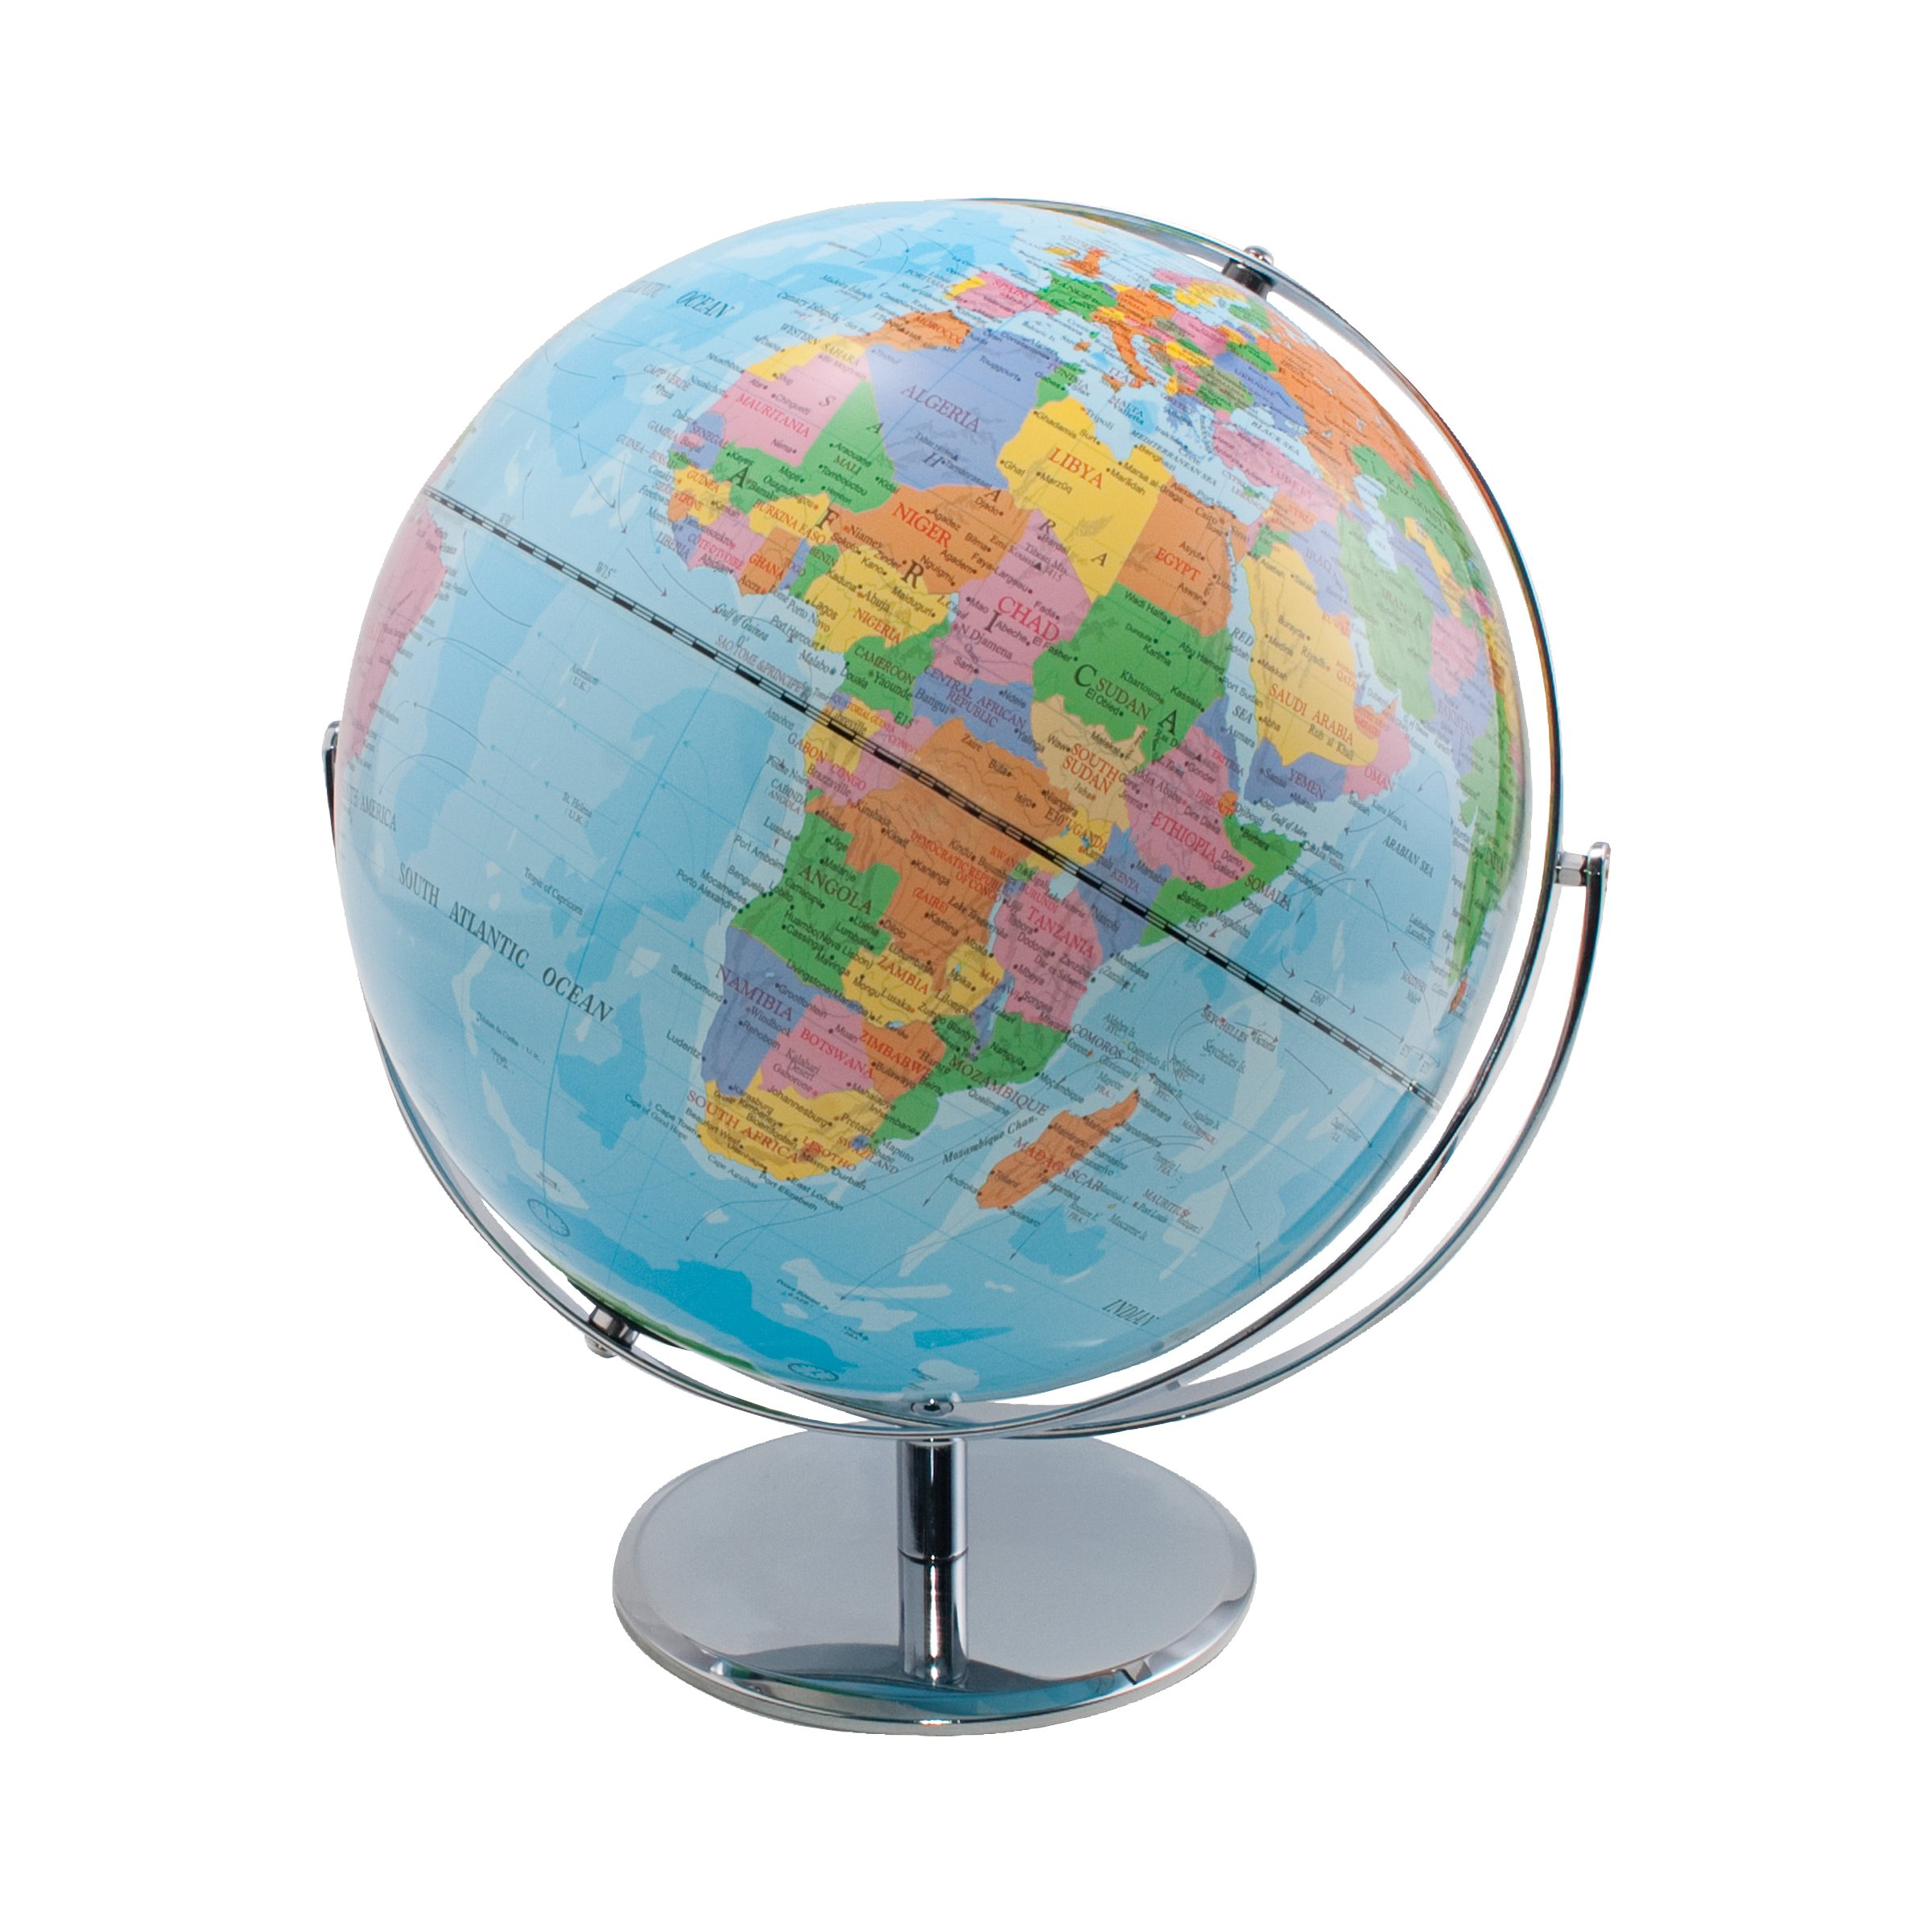 Advantus Desktop World Globe with Blue Oceans, Rotating Globe on Stand, 4-Globe Pack, 30502CT